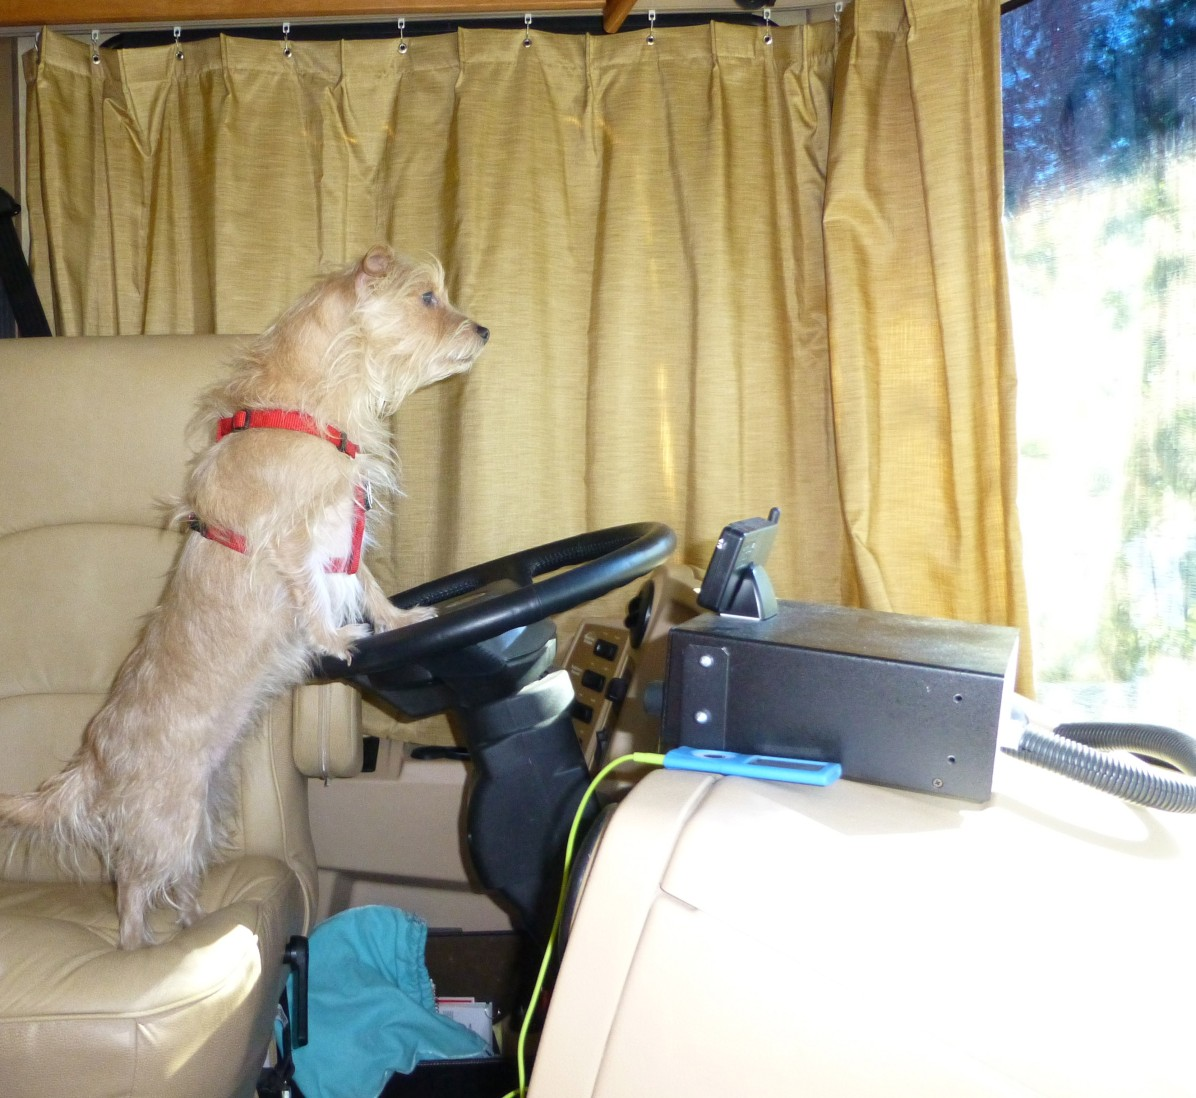 Cookie, the wanna be driver